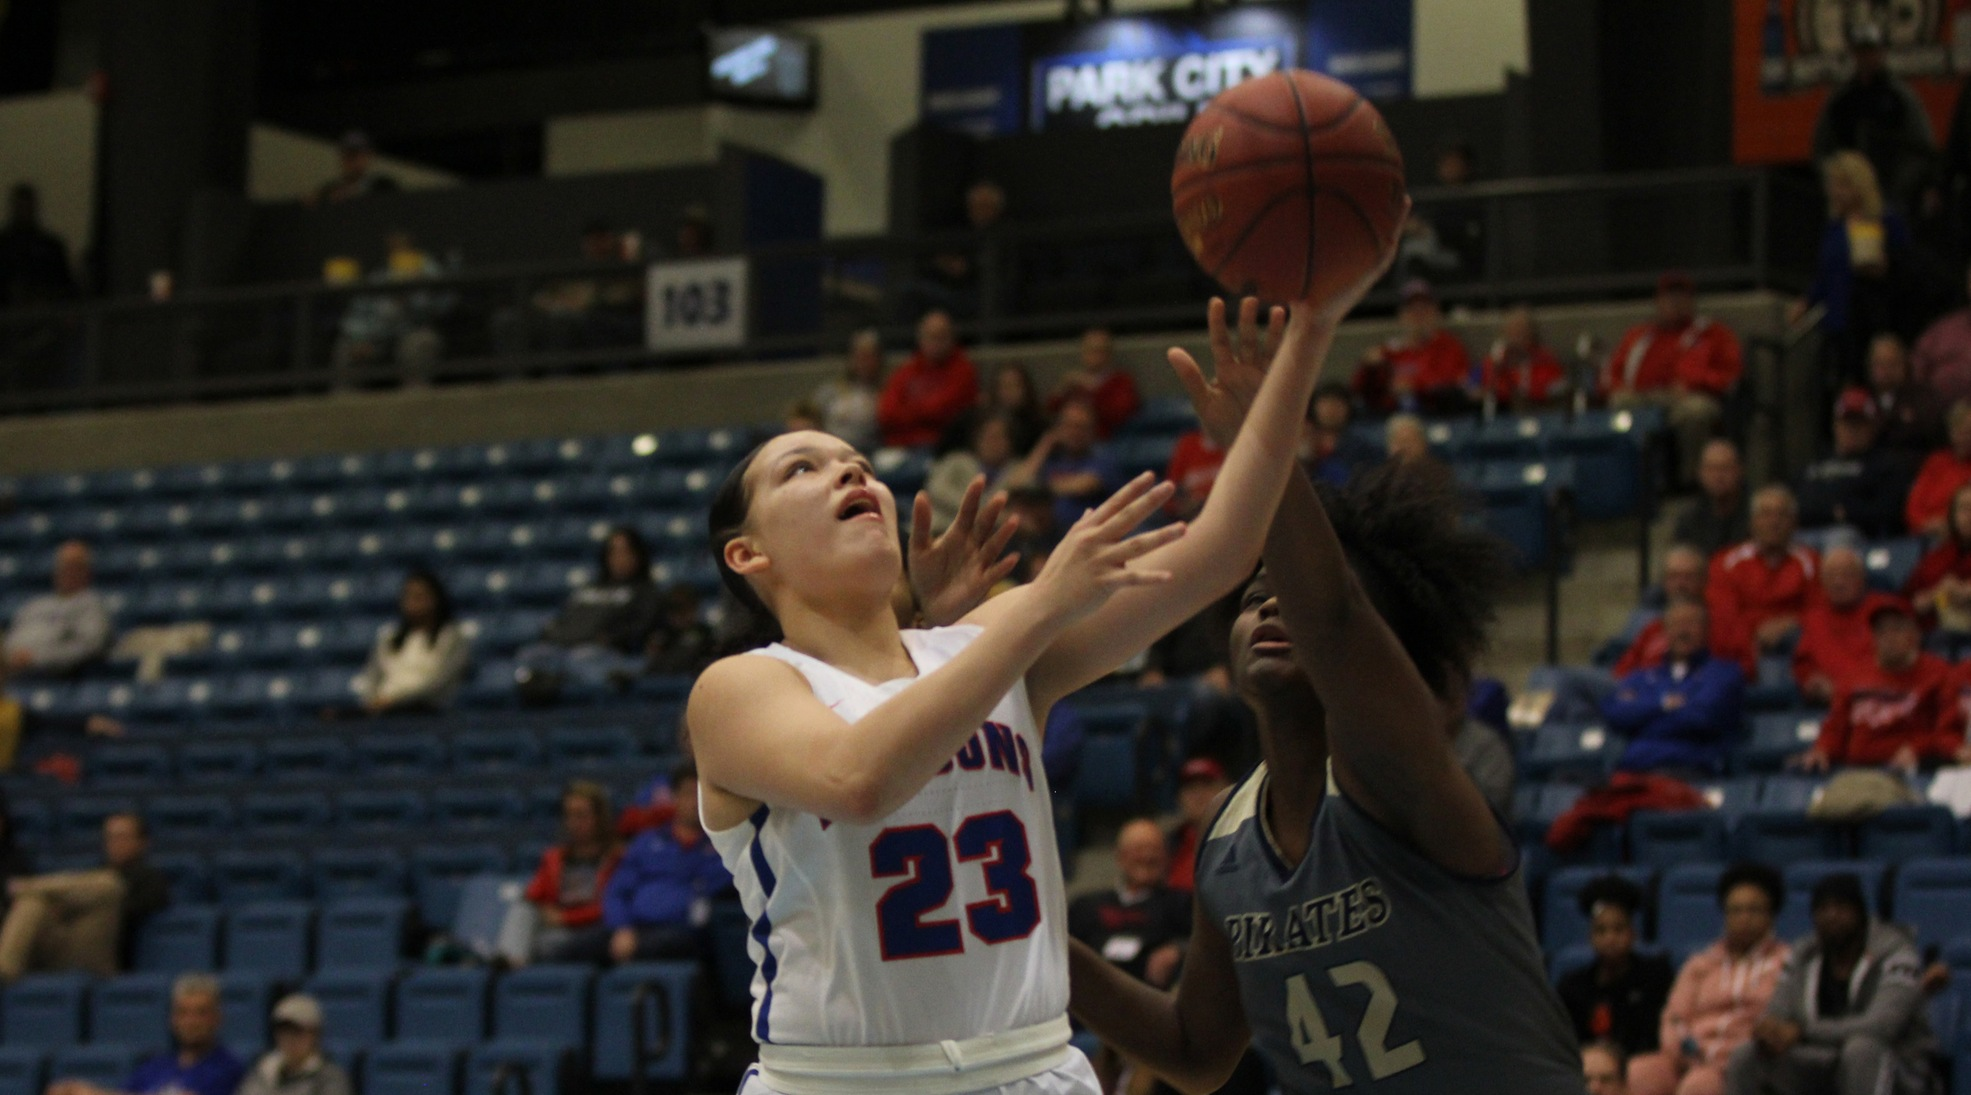 Makayla Vannett scored 17 points and hit three big 3-pointers to help the No. 8 Blue Dragons to a 74-62 win over Independence in the quarterfinals of the Region VI Tournament at Hartman Arena in Park City on Saturday. (Bre Rogers/Blue Dragon Sports Information).